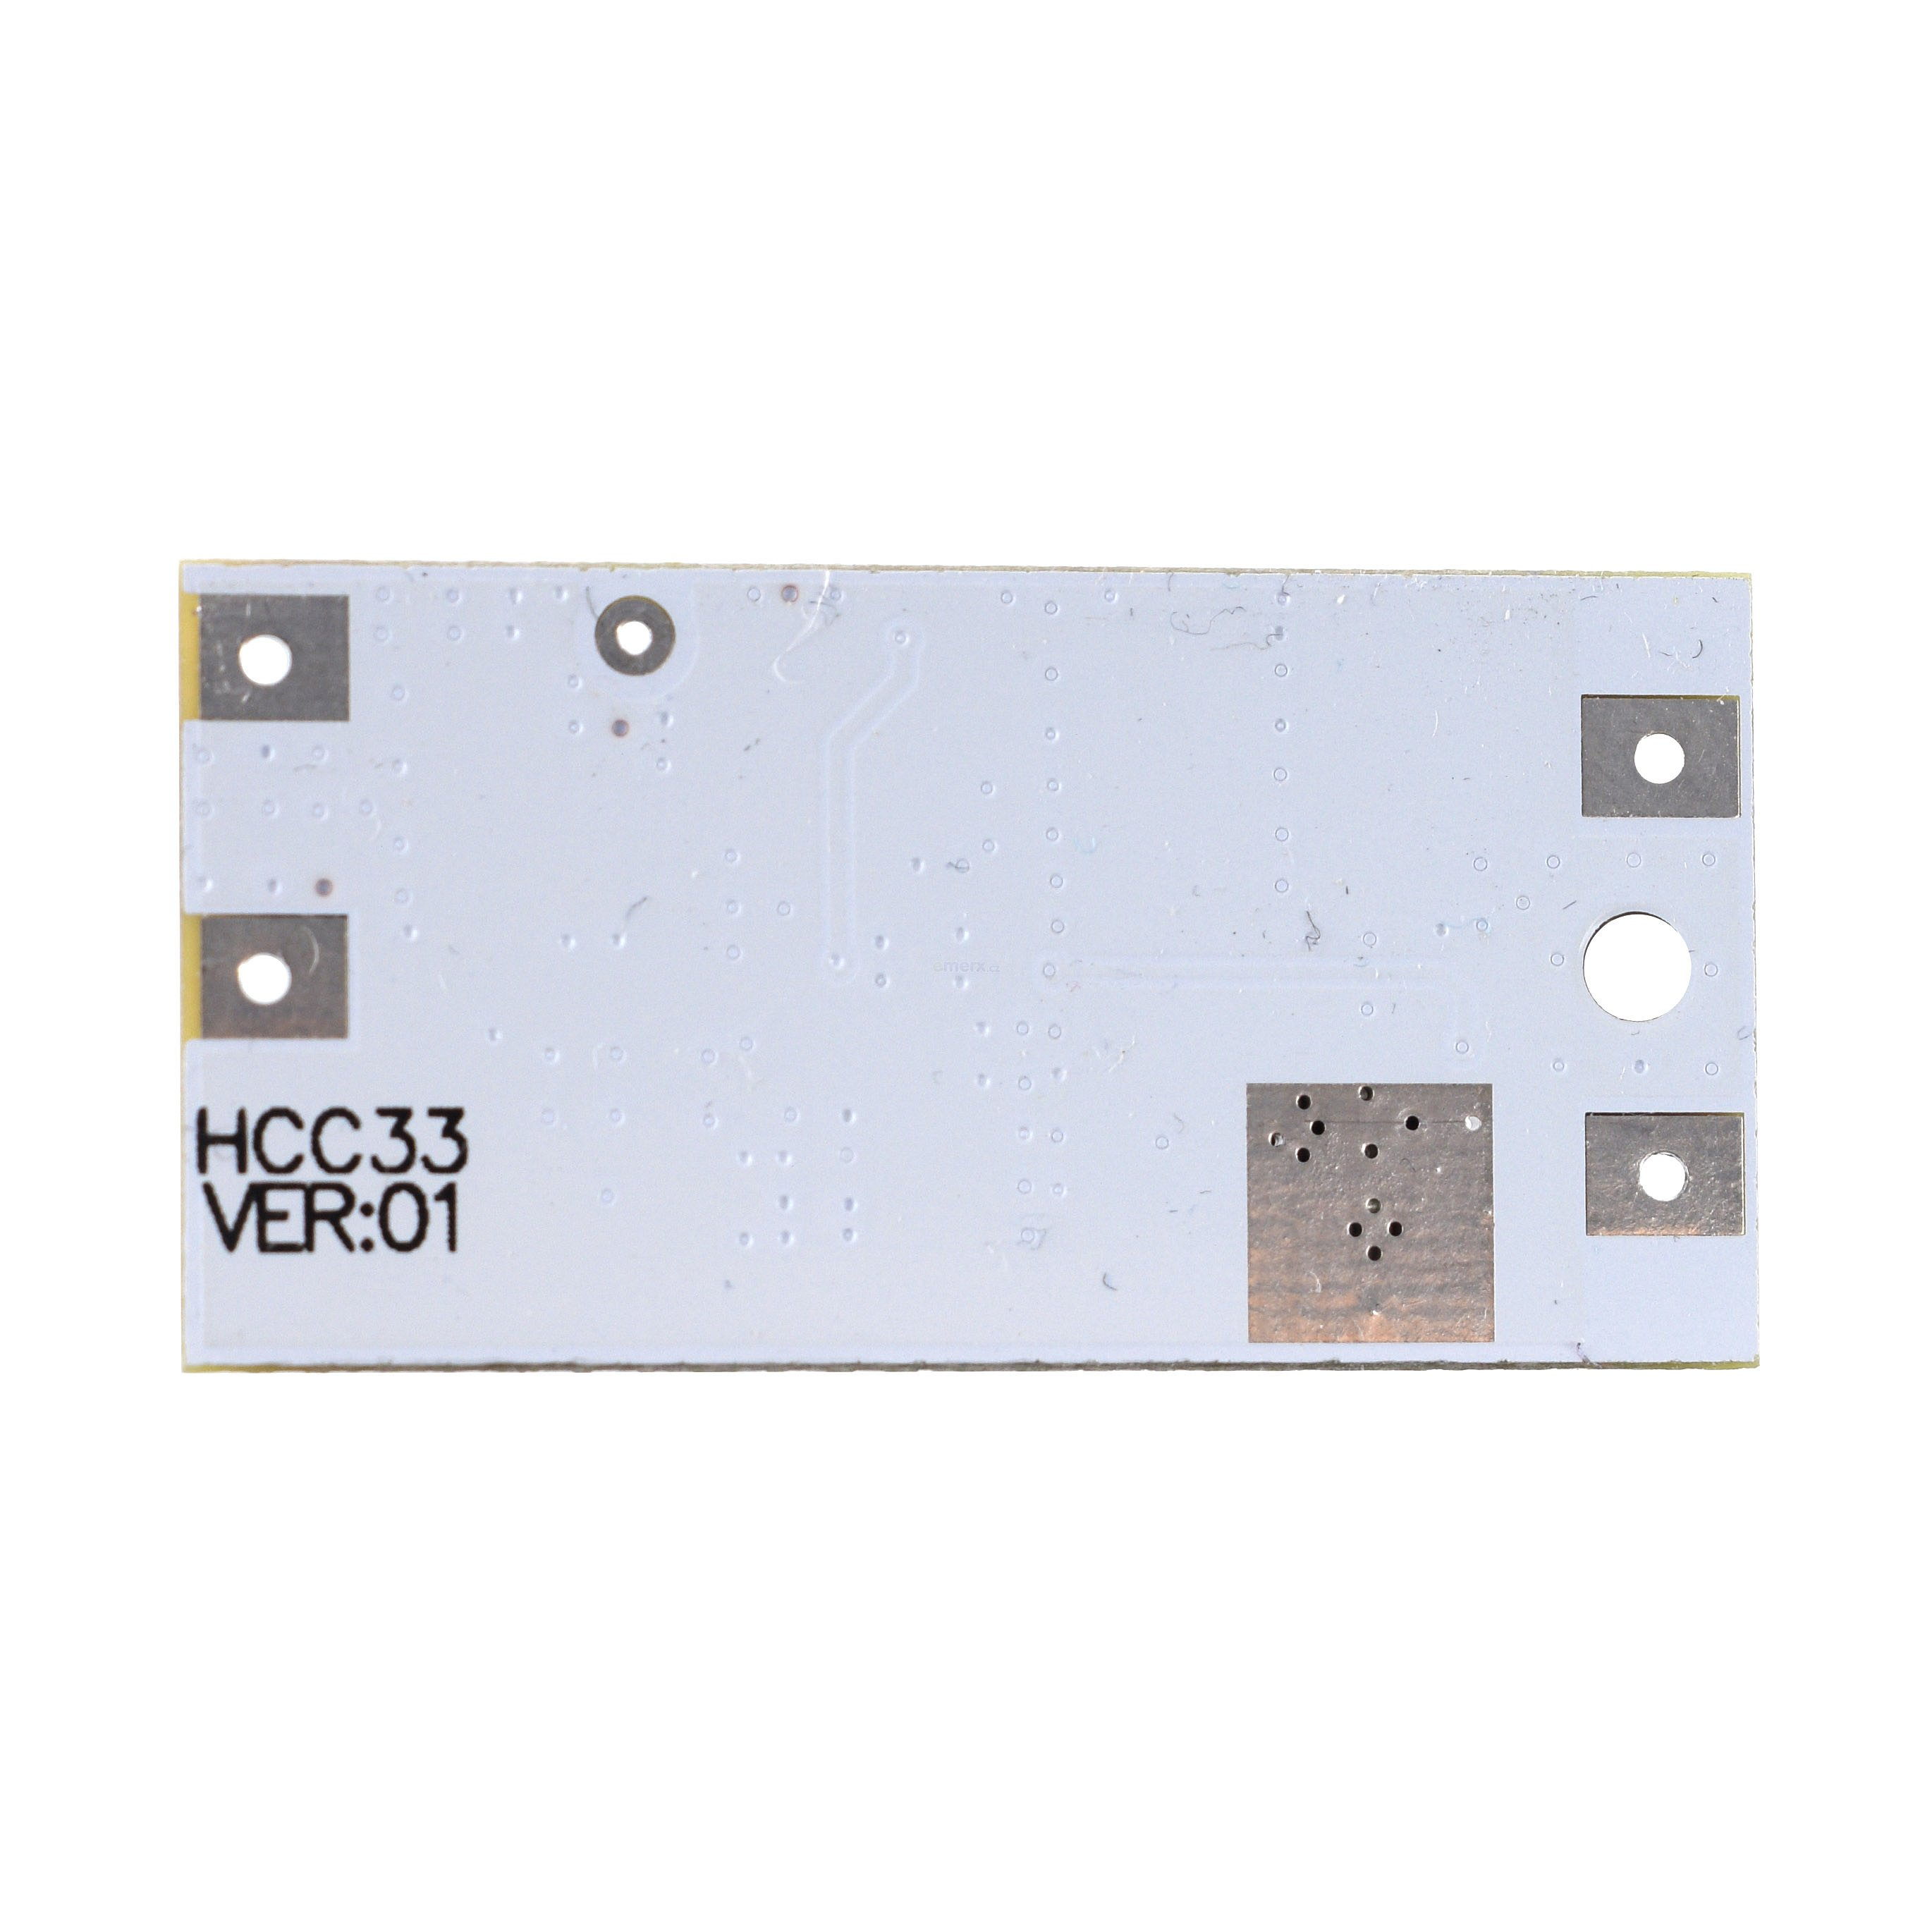 LED stmívač do profilu 20mm, 9-24VDC TG45 - modul